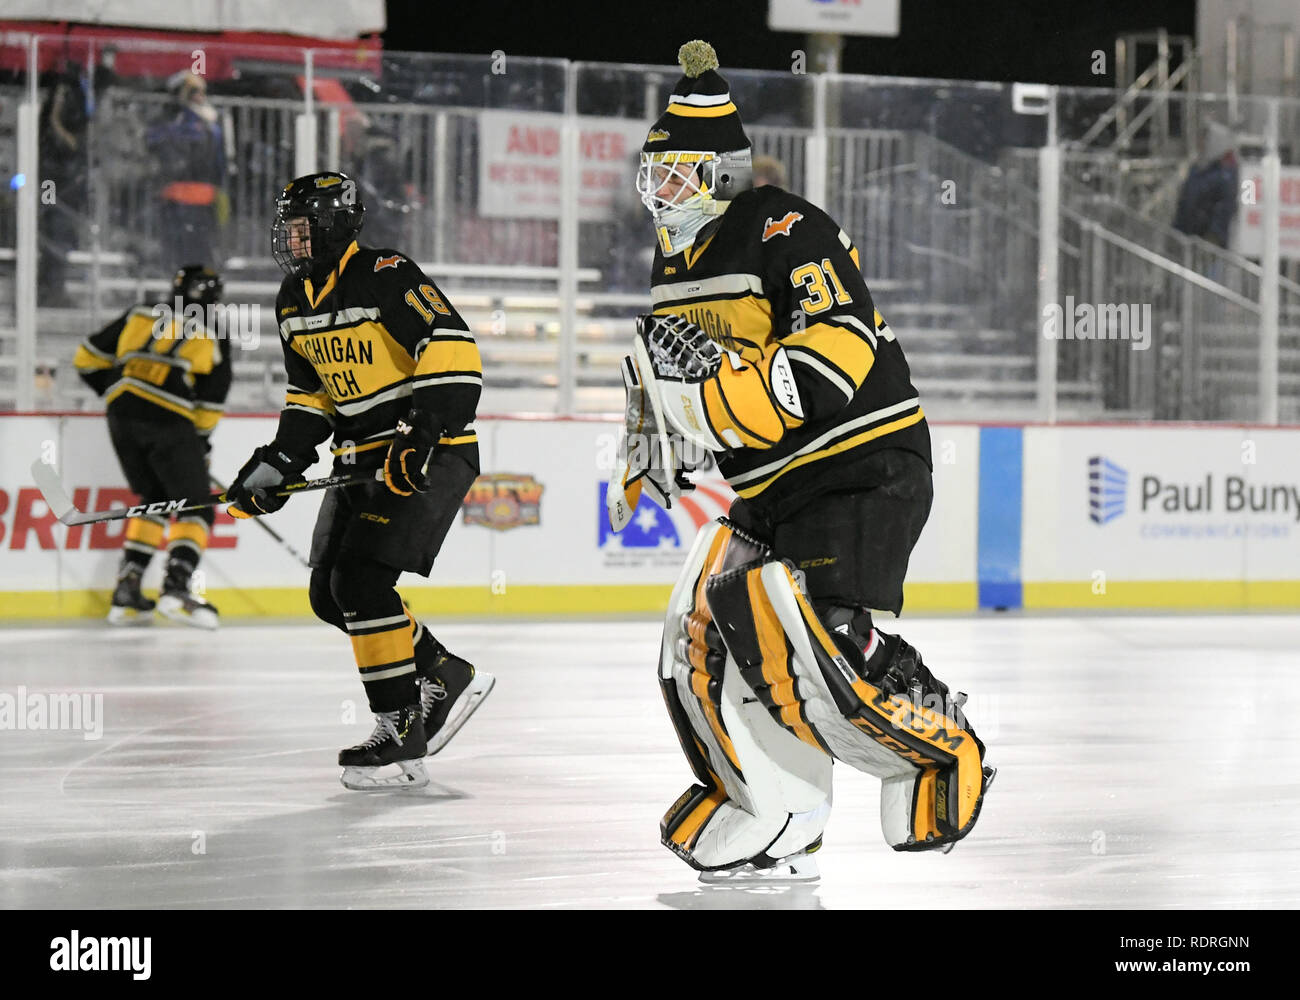 Bemidji, Minnesota, USA. 18th Jan 2019. Michigan Tech Huskies goaltender Devin Kero (31) and Michigan Tech Huskies forward Greyson Reitmeier (18) warmup before an outdoor NCAA men's college hockey game for Hockey Day Minnesota between the Michigan Tech Huskies and the Bemidji State Beavers in Bemidji, MN. Photo by Russell Hons/CSM Credit: Cal Sport Media/Alamy Live News - Stock Image